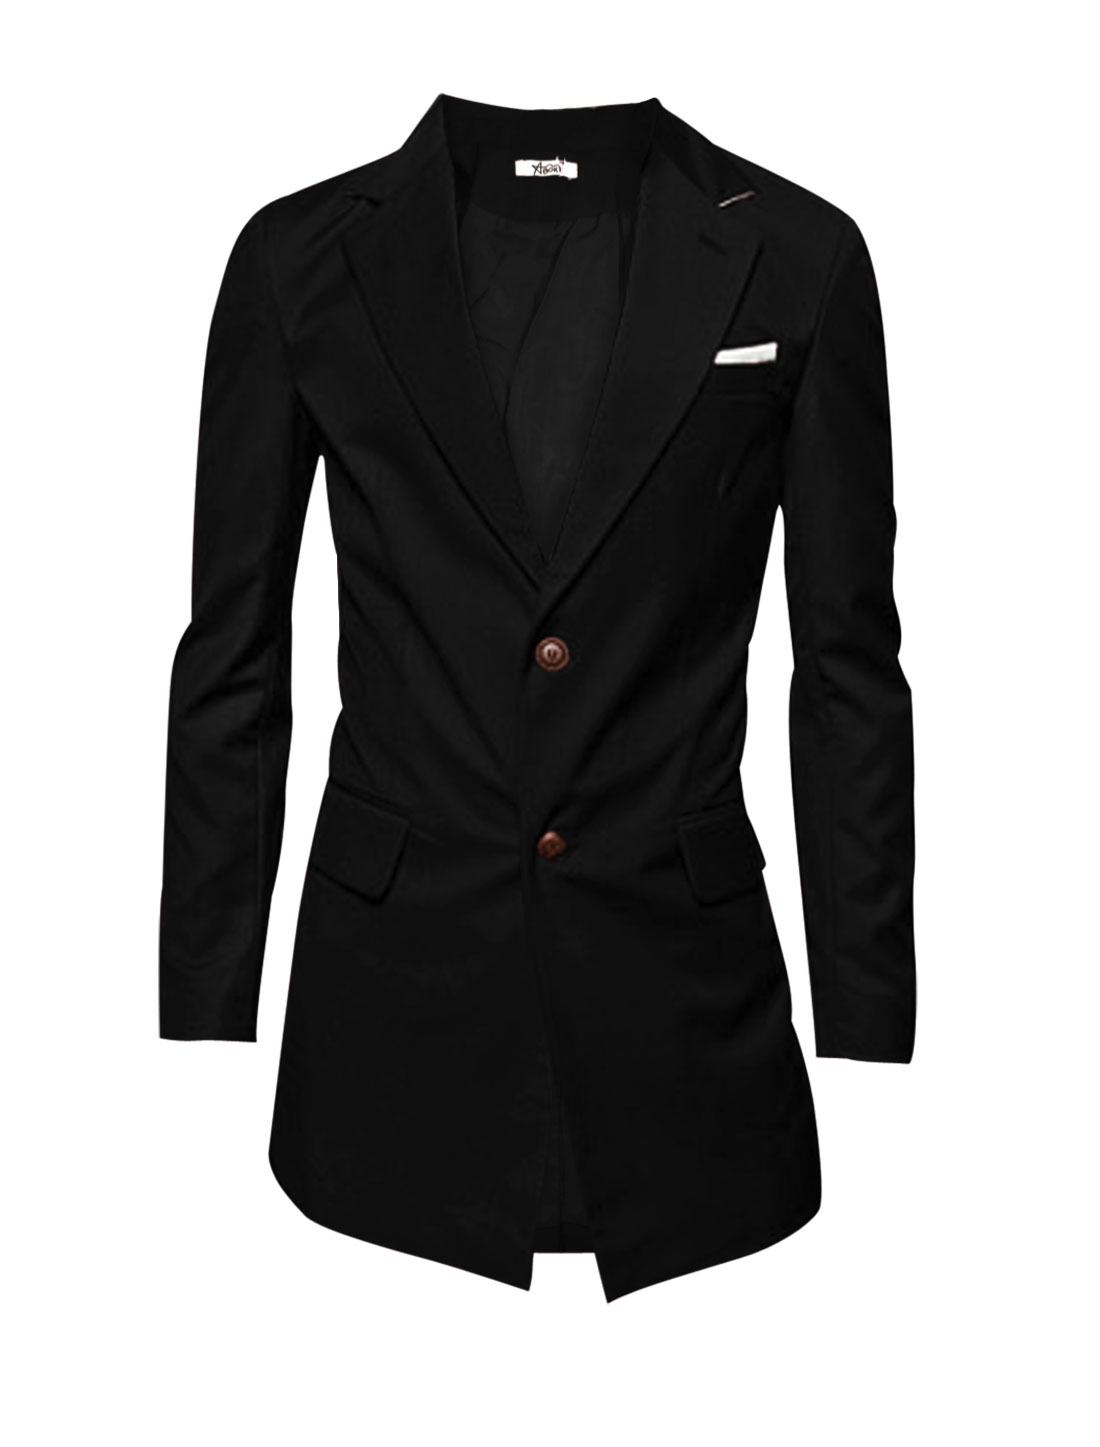 Men Notched Lapel Single Breasted Two Front Pockets Blazer Jacket Black L